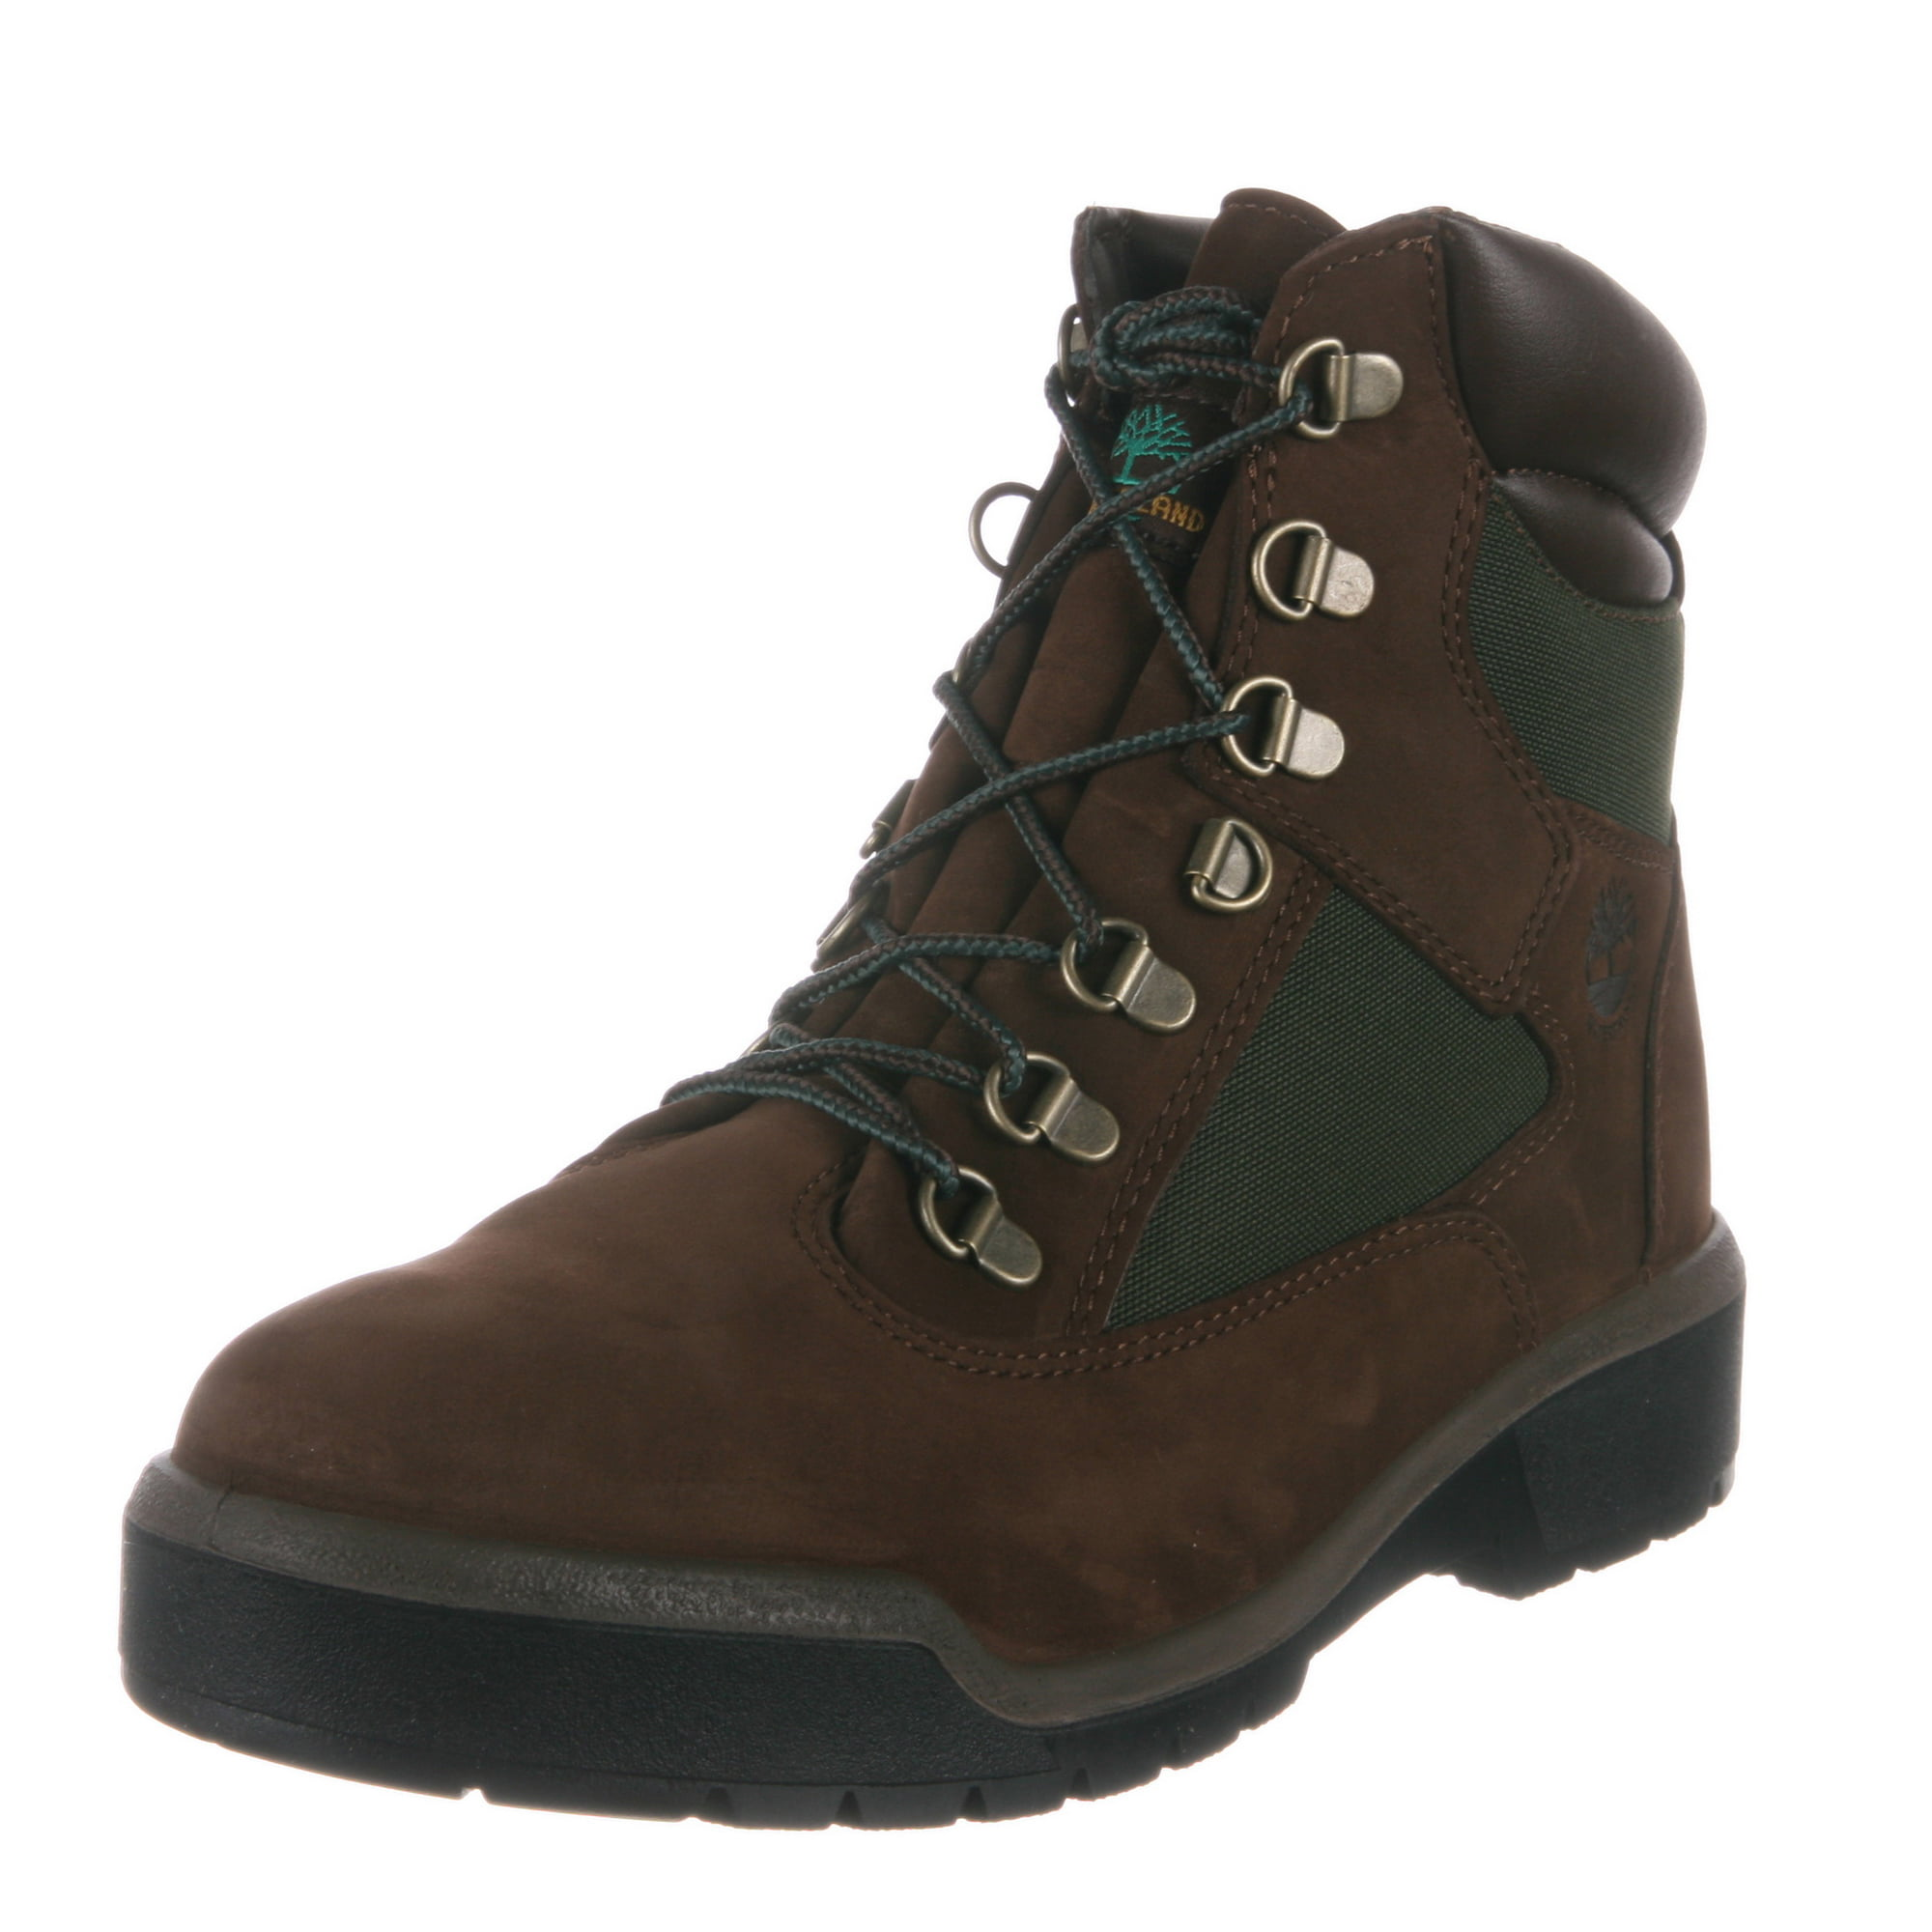 "Timberland FIELD Mens Boots 6""F L WP TB0A18AHD47 by Timberland"